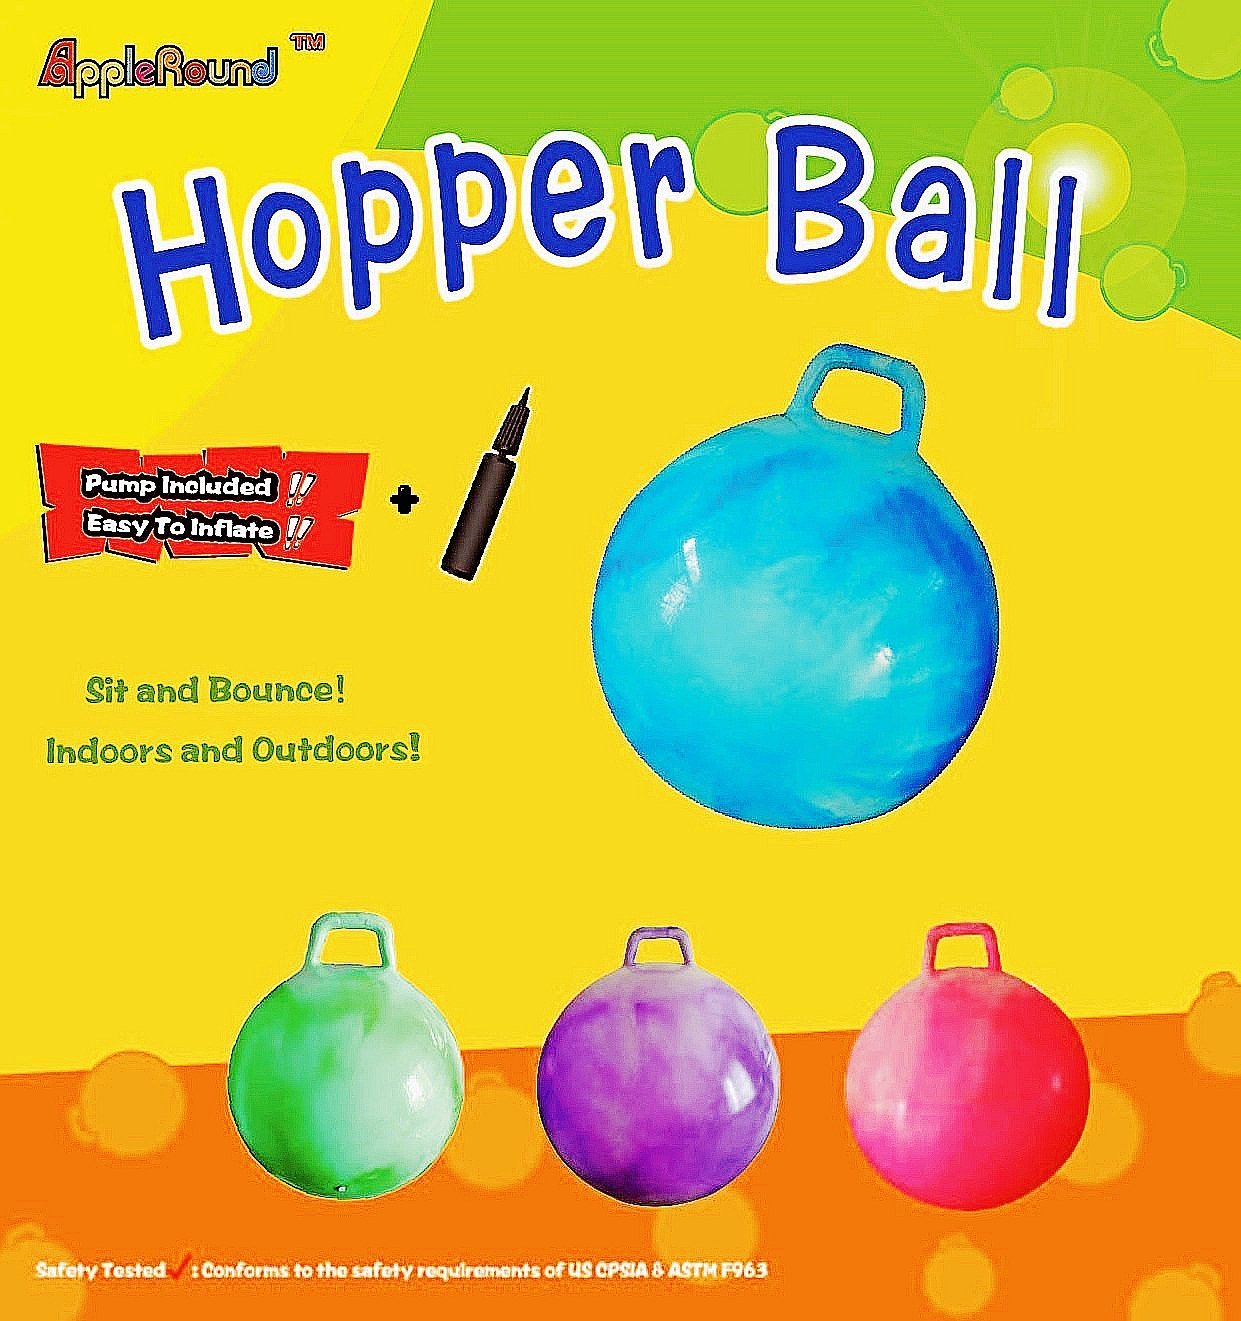 AppleRound Space Hopper Ball with Air Pump: 28in/70cm Diameter for Age 13+, Hop Ball, Kangaroo Bouncer, Hoppity Hop, Jumping Ball, Sit & Bounce by AppleRound (Image #3)